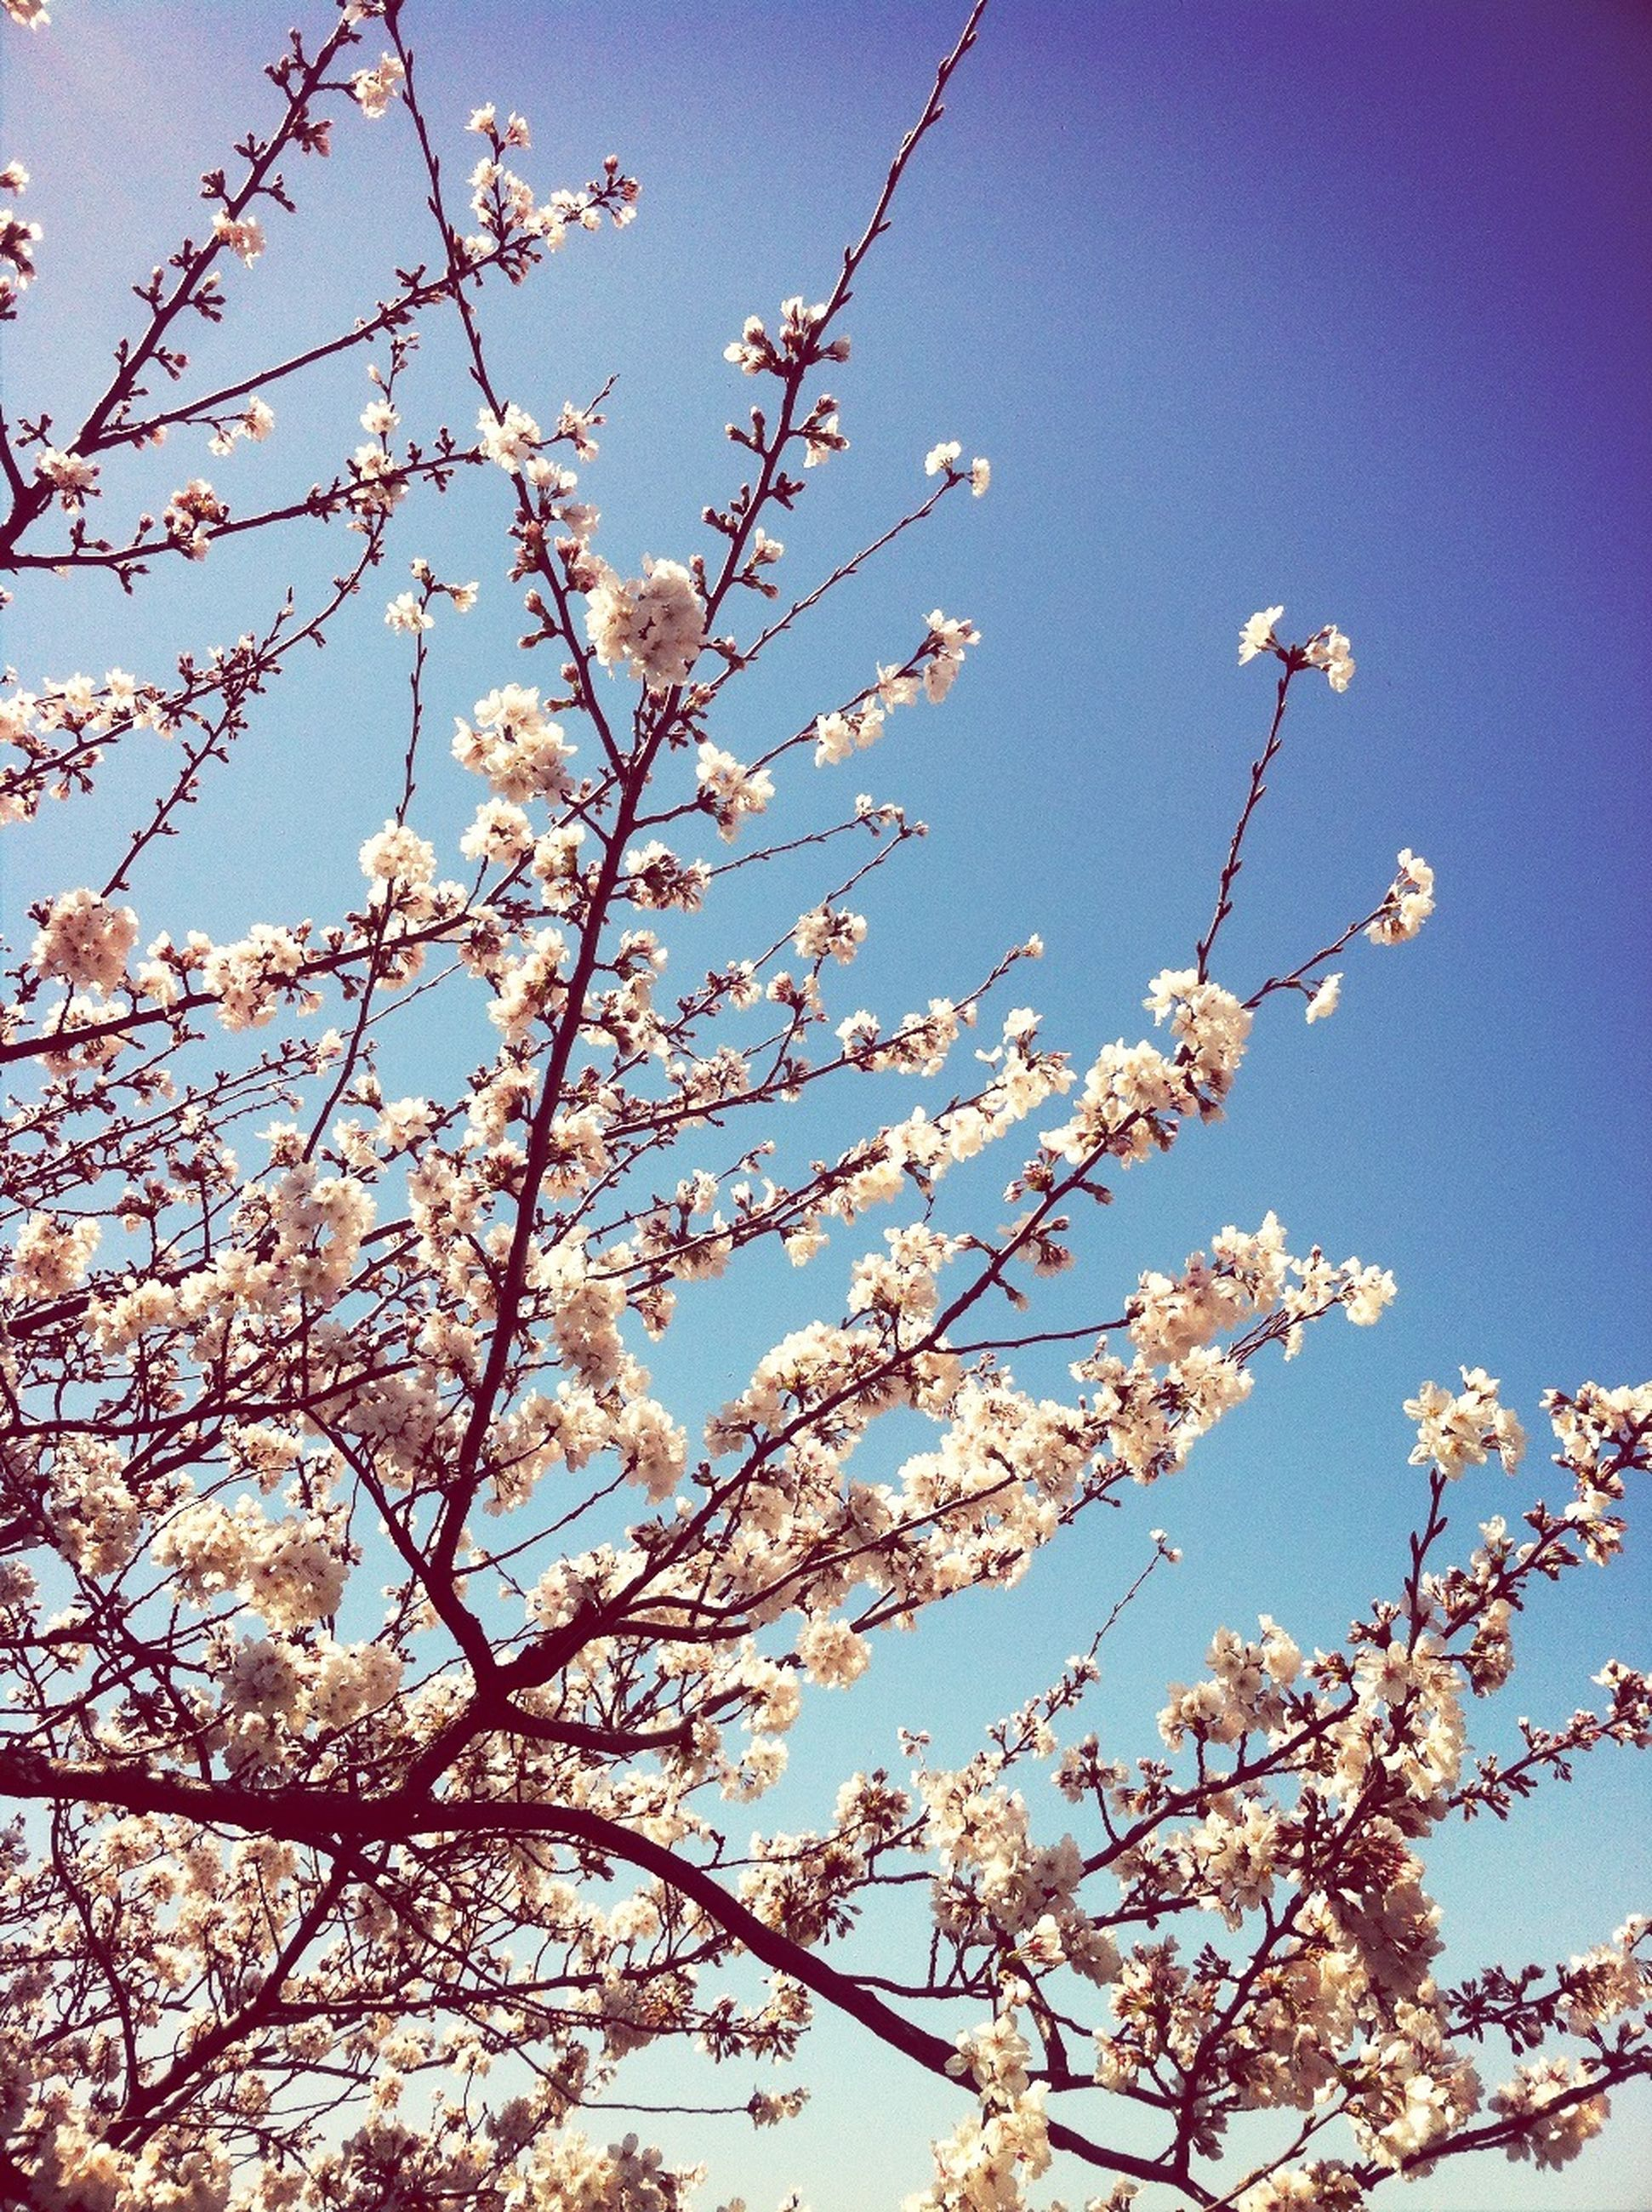 flower, low angle view, branch, tree, freshness, clear sky, growth, blossom, beauty in nature, fragility, nature, cherry blossom, cherry tree, blue, in bloom, sky, springtime, blooming, high section, fruit tree